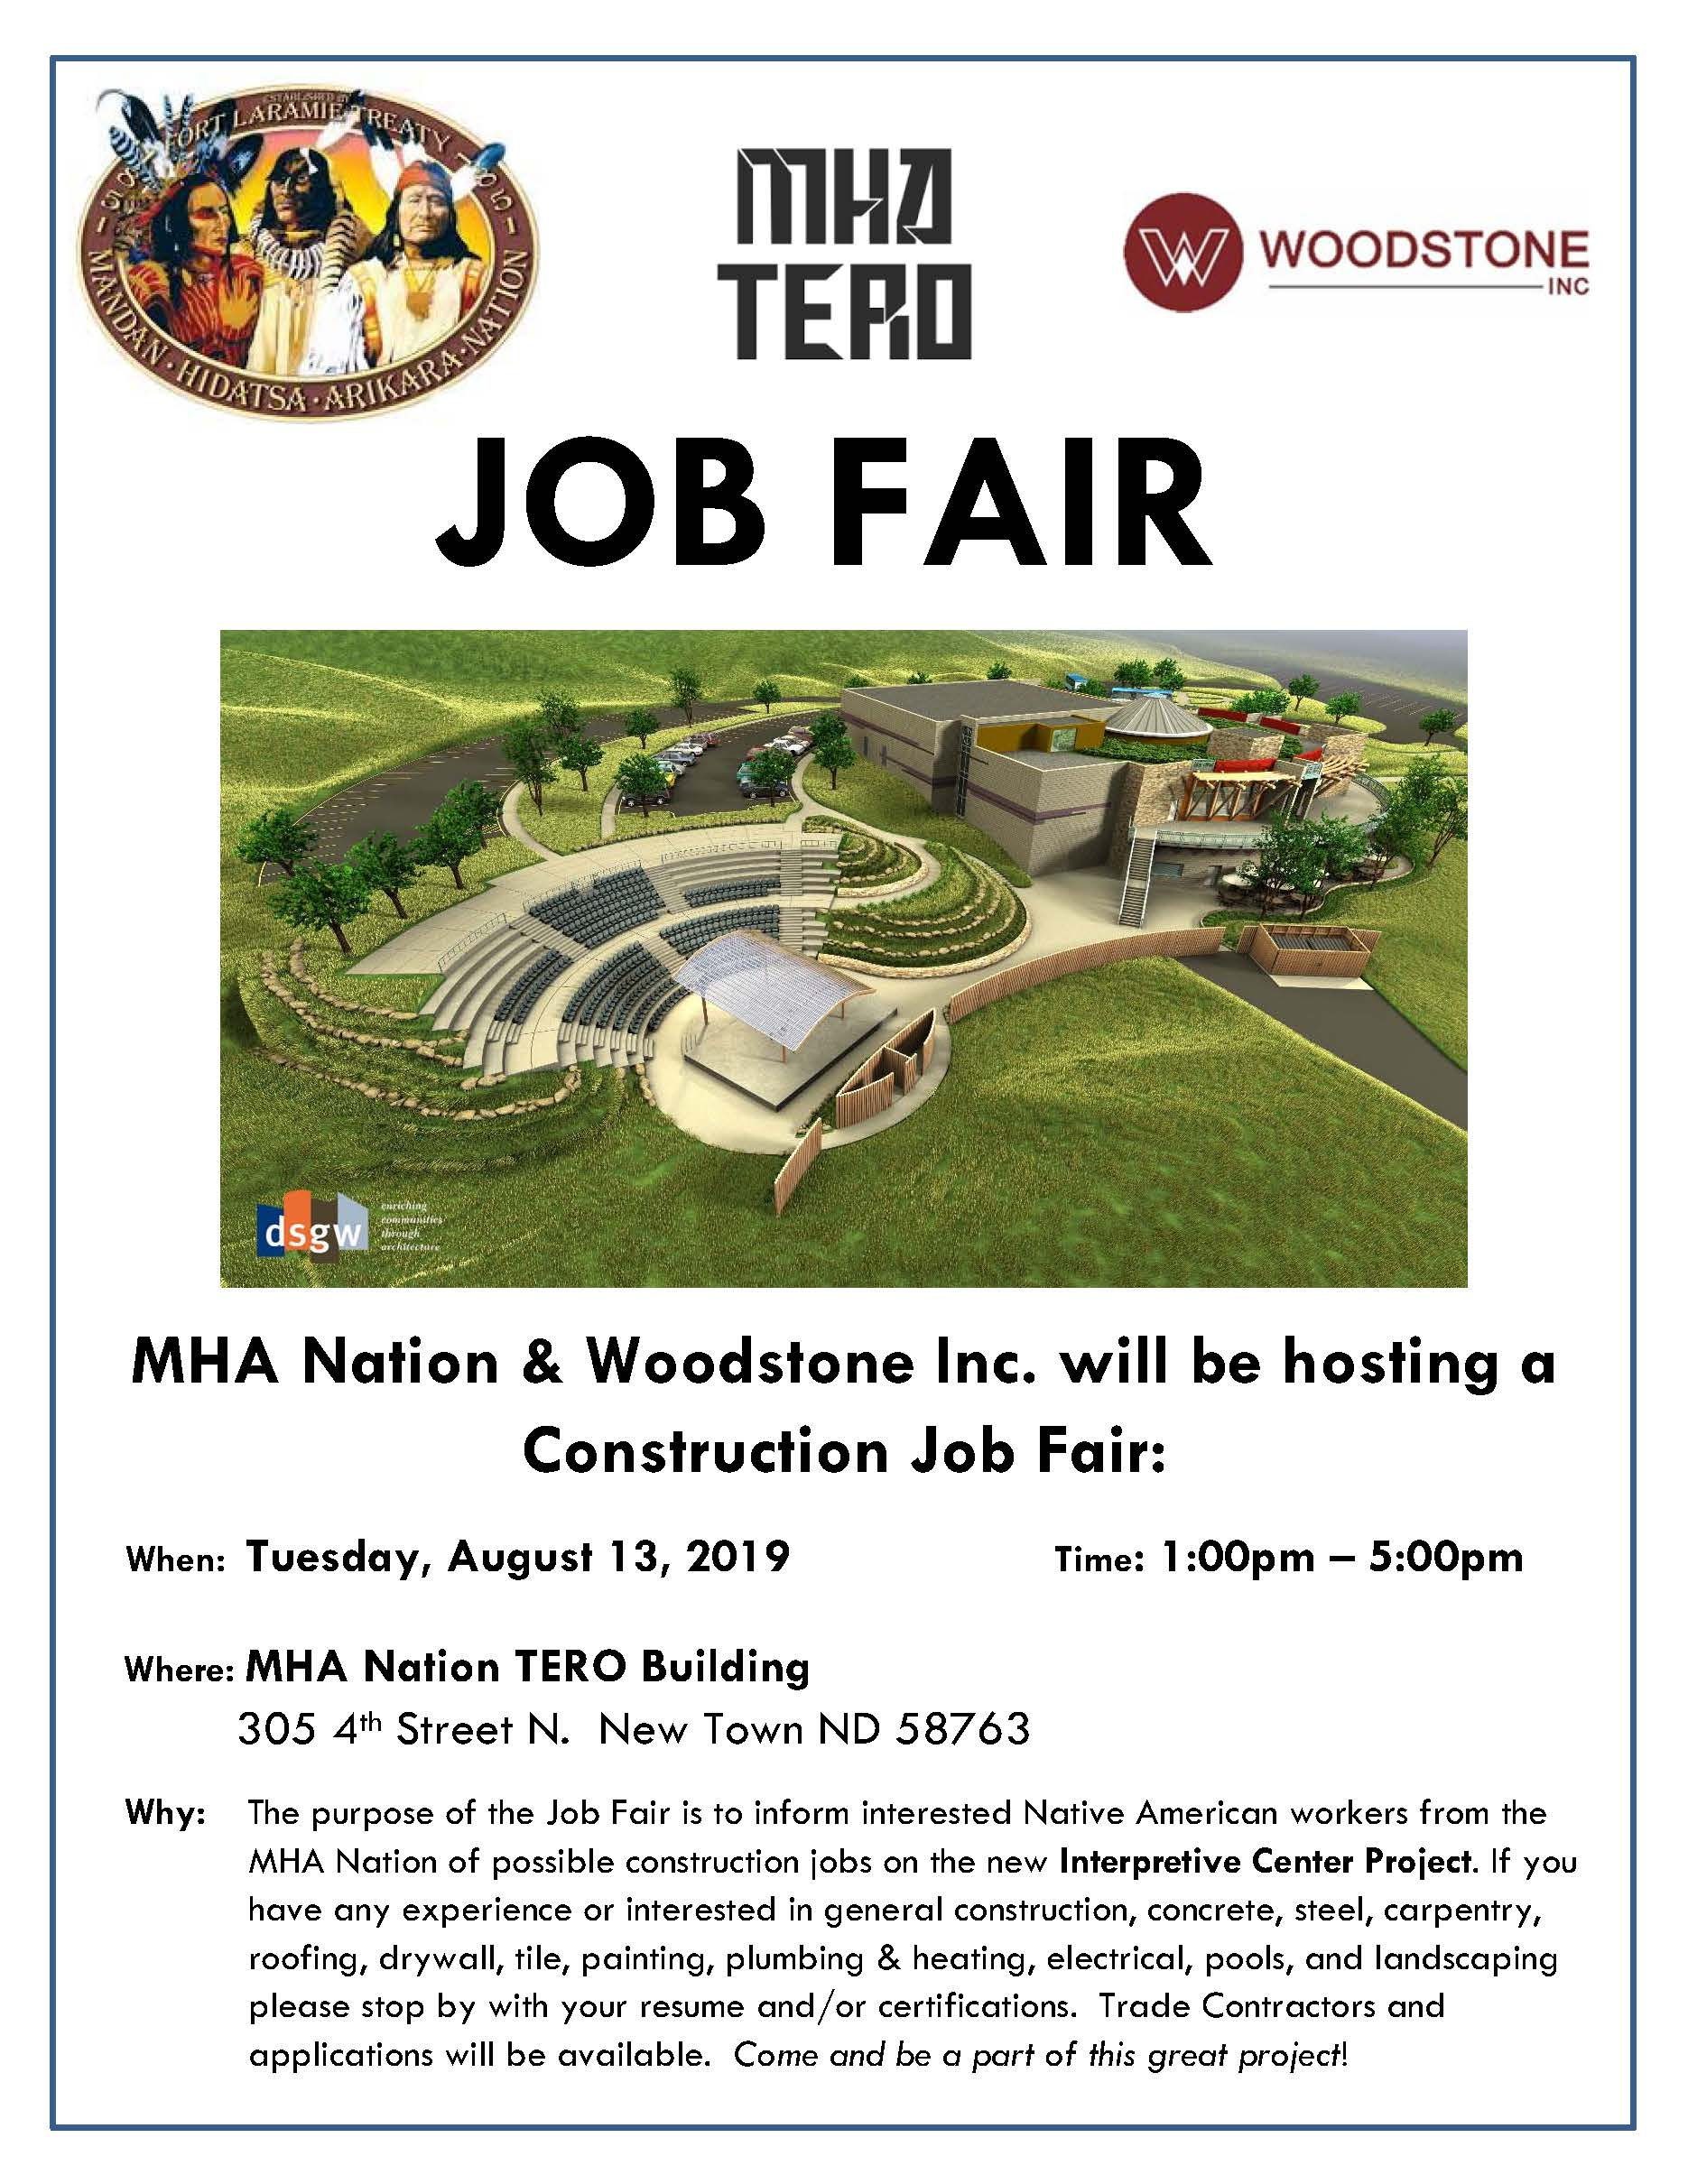 MHAIC Job Fair Flyer.jpg